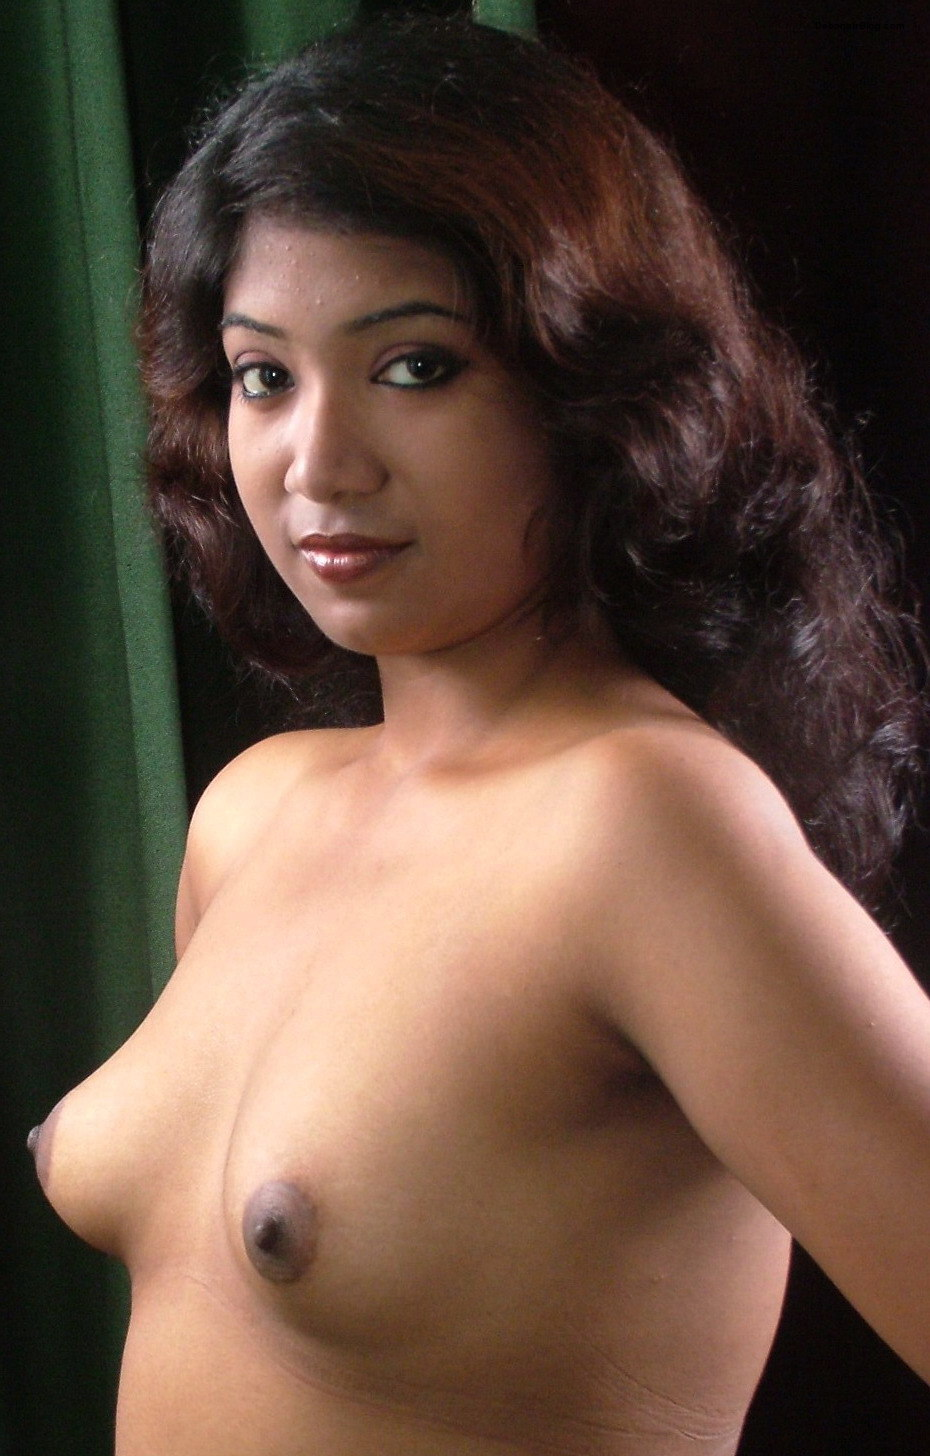 Hot indian girl boobs cleavage word honour